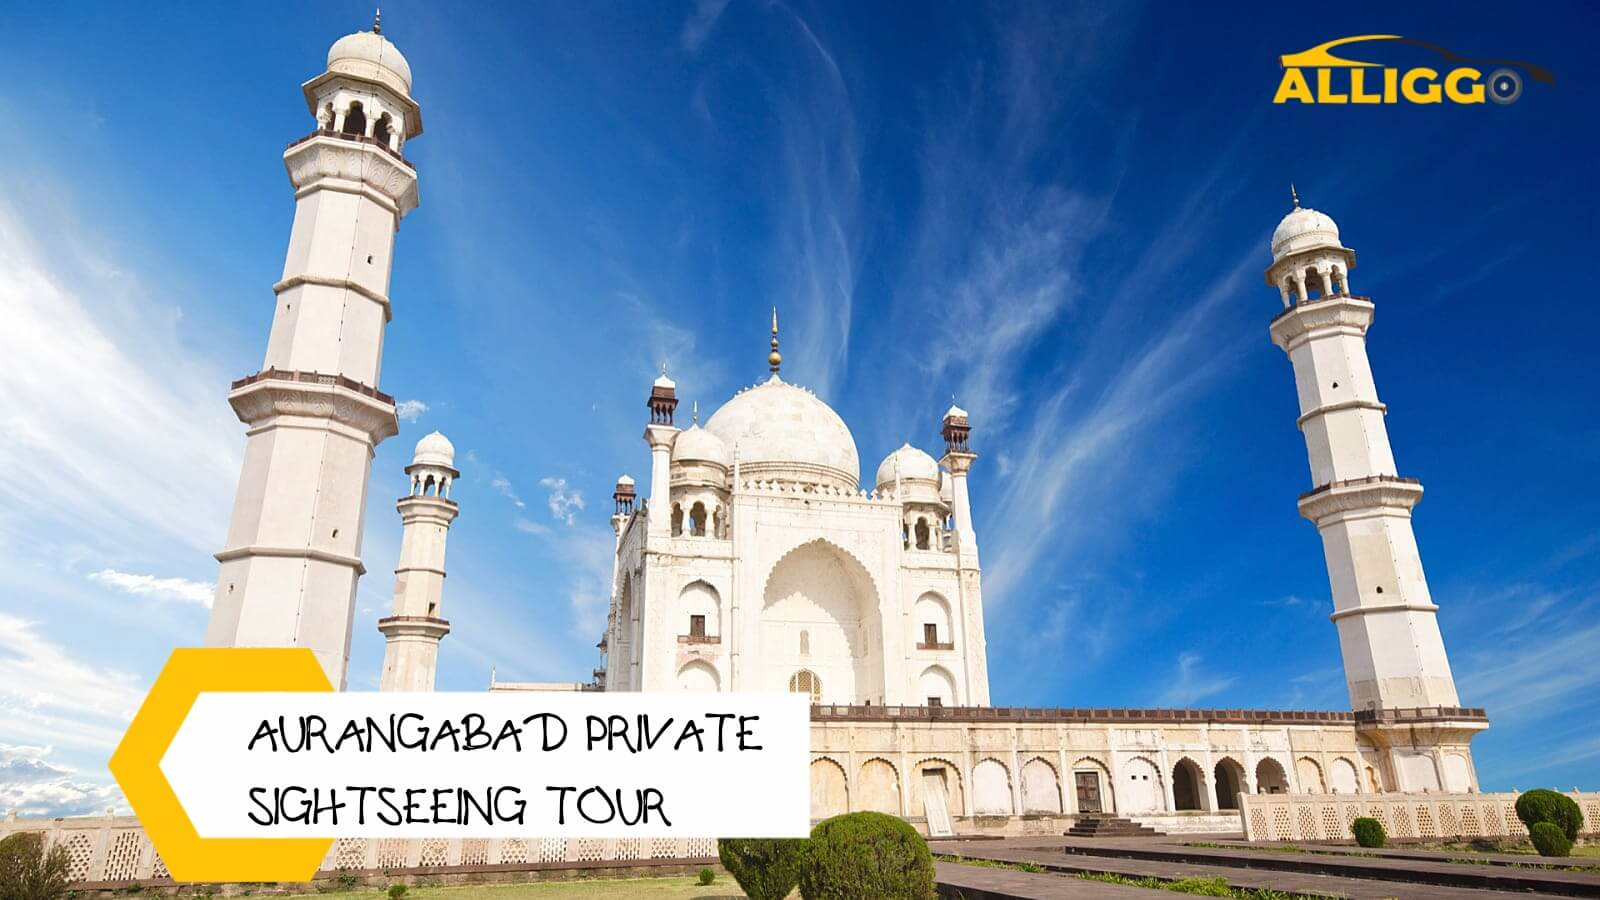 Alliggo_Car_Rentals_Aurangabad_Private_Sightseeing_Tour